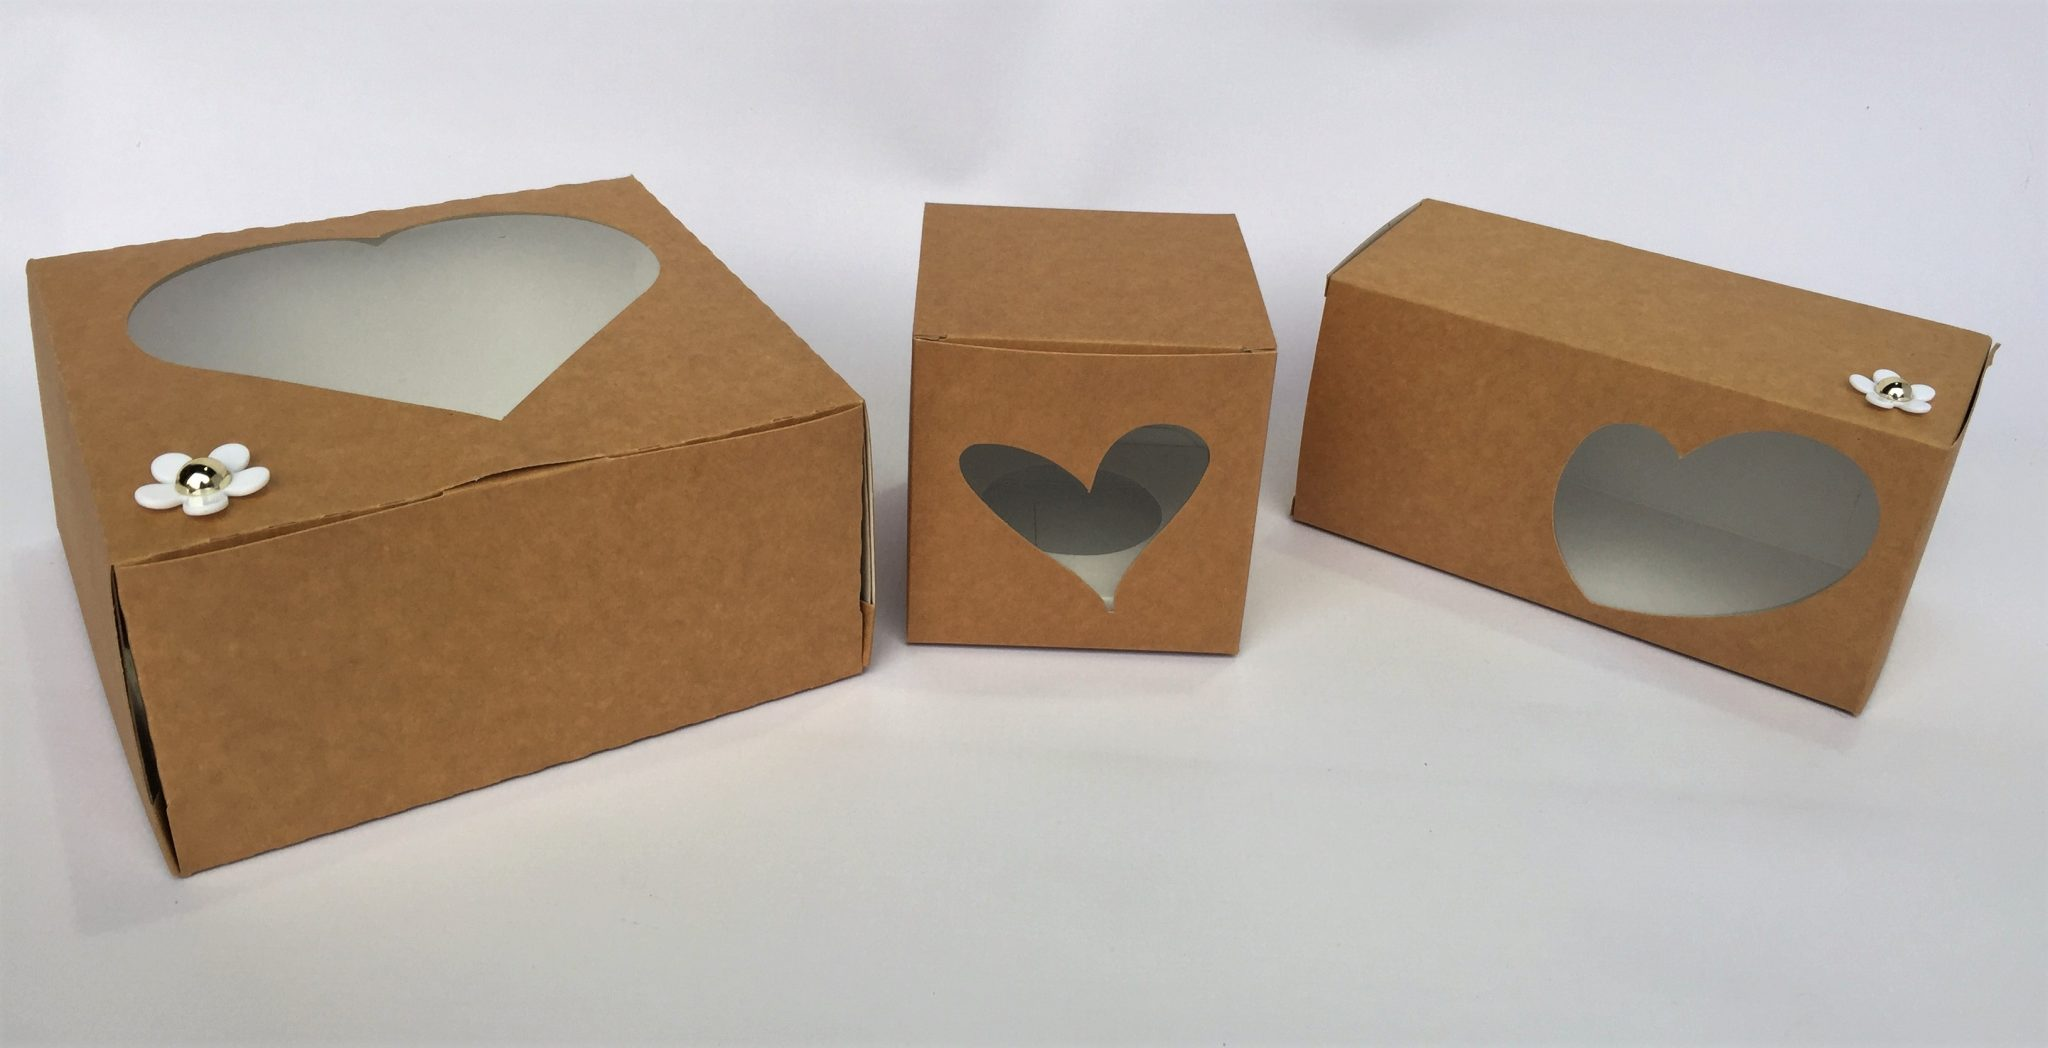 Heart Cake Box, Single CupCake Box & Swiss Roll